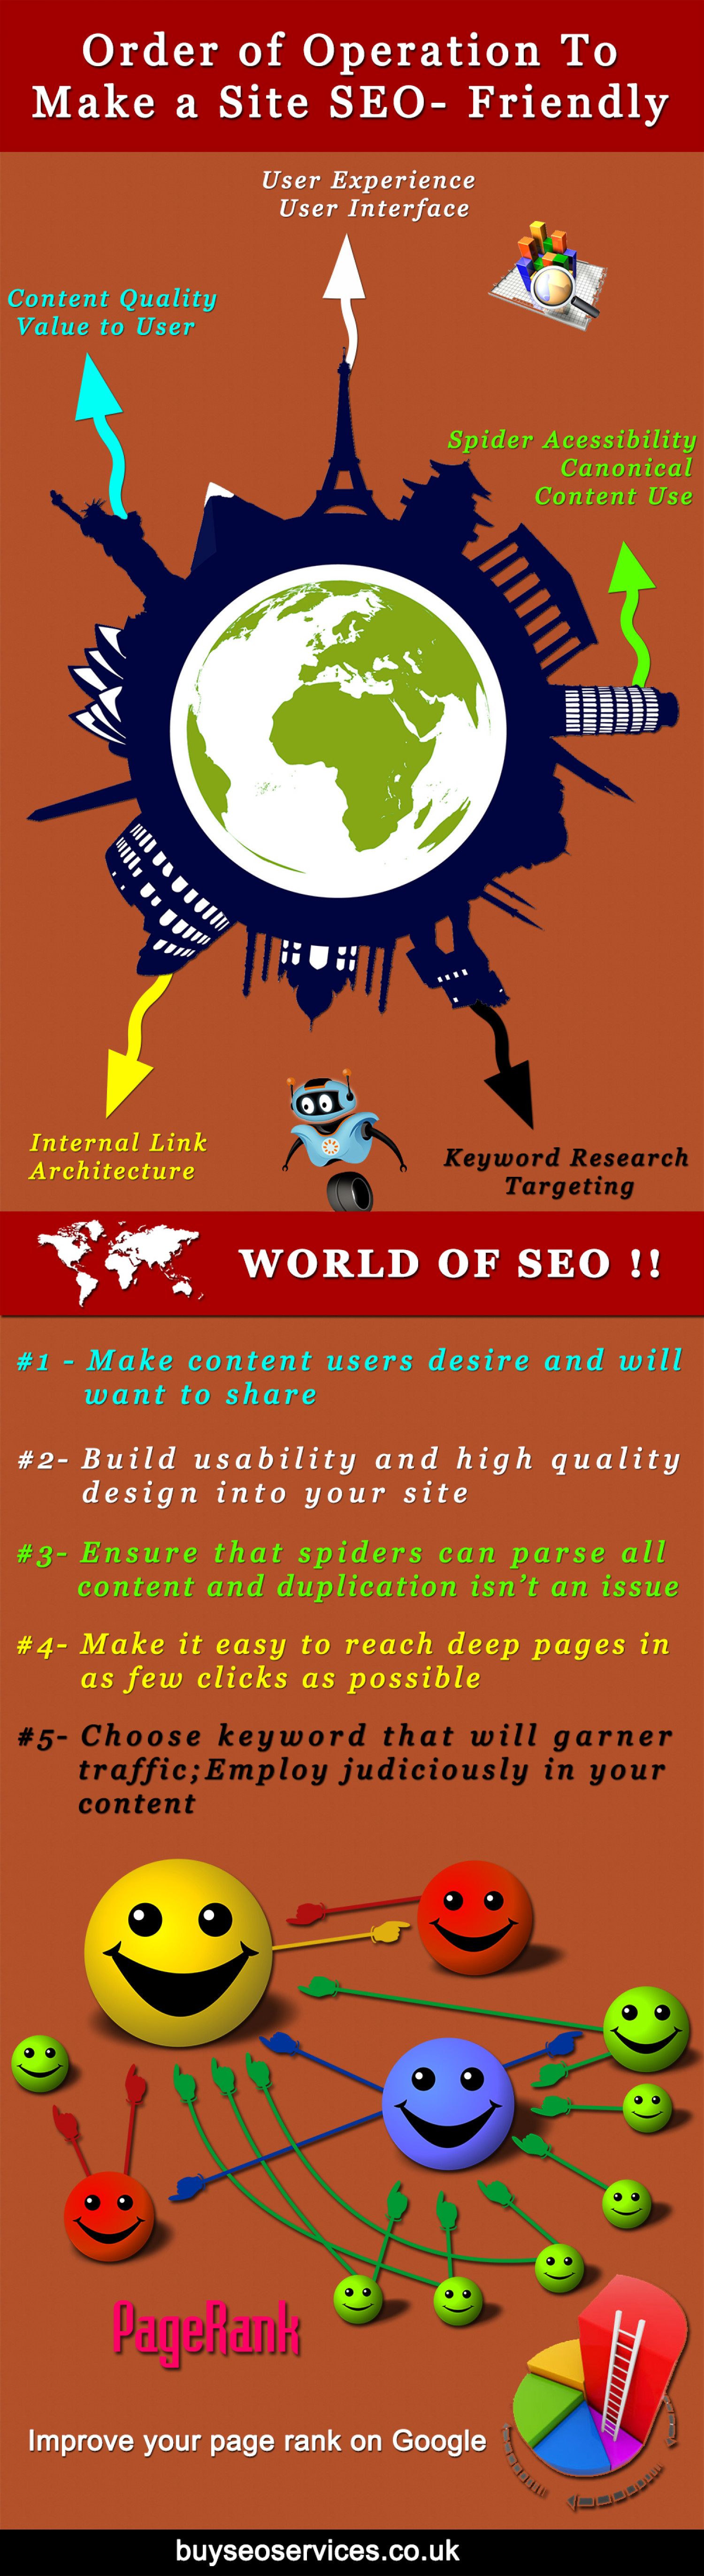 Order of Operation to Make a Site SEO Friendly Infographic